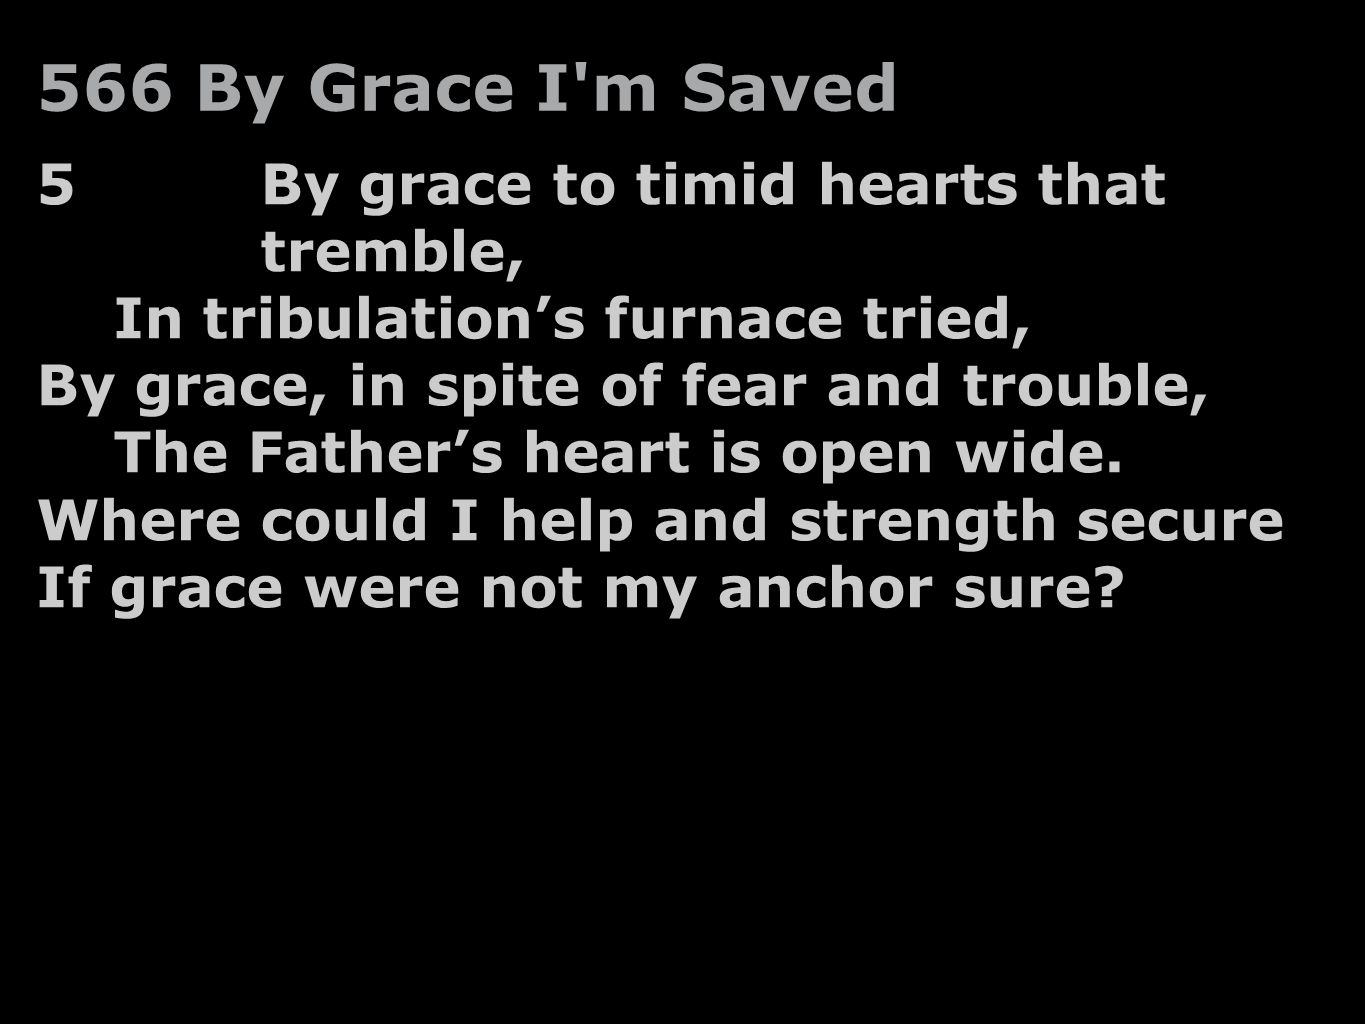 5By grace to timid hearts that tremble, In tribulation's furnace tried, By grace, in spite of fear and trouble, The Father's heart is open wide. Where